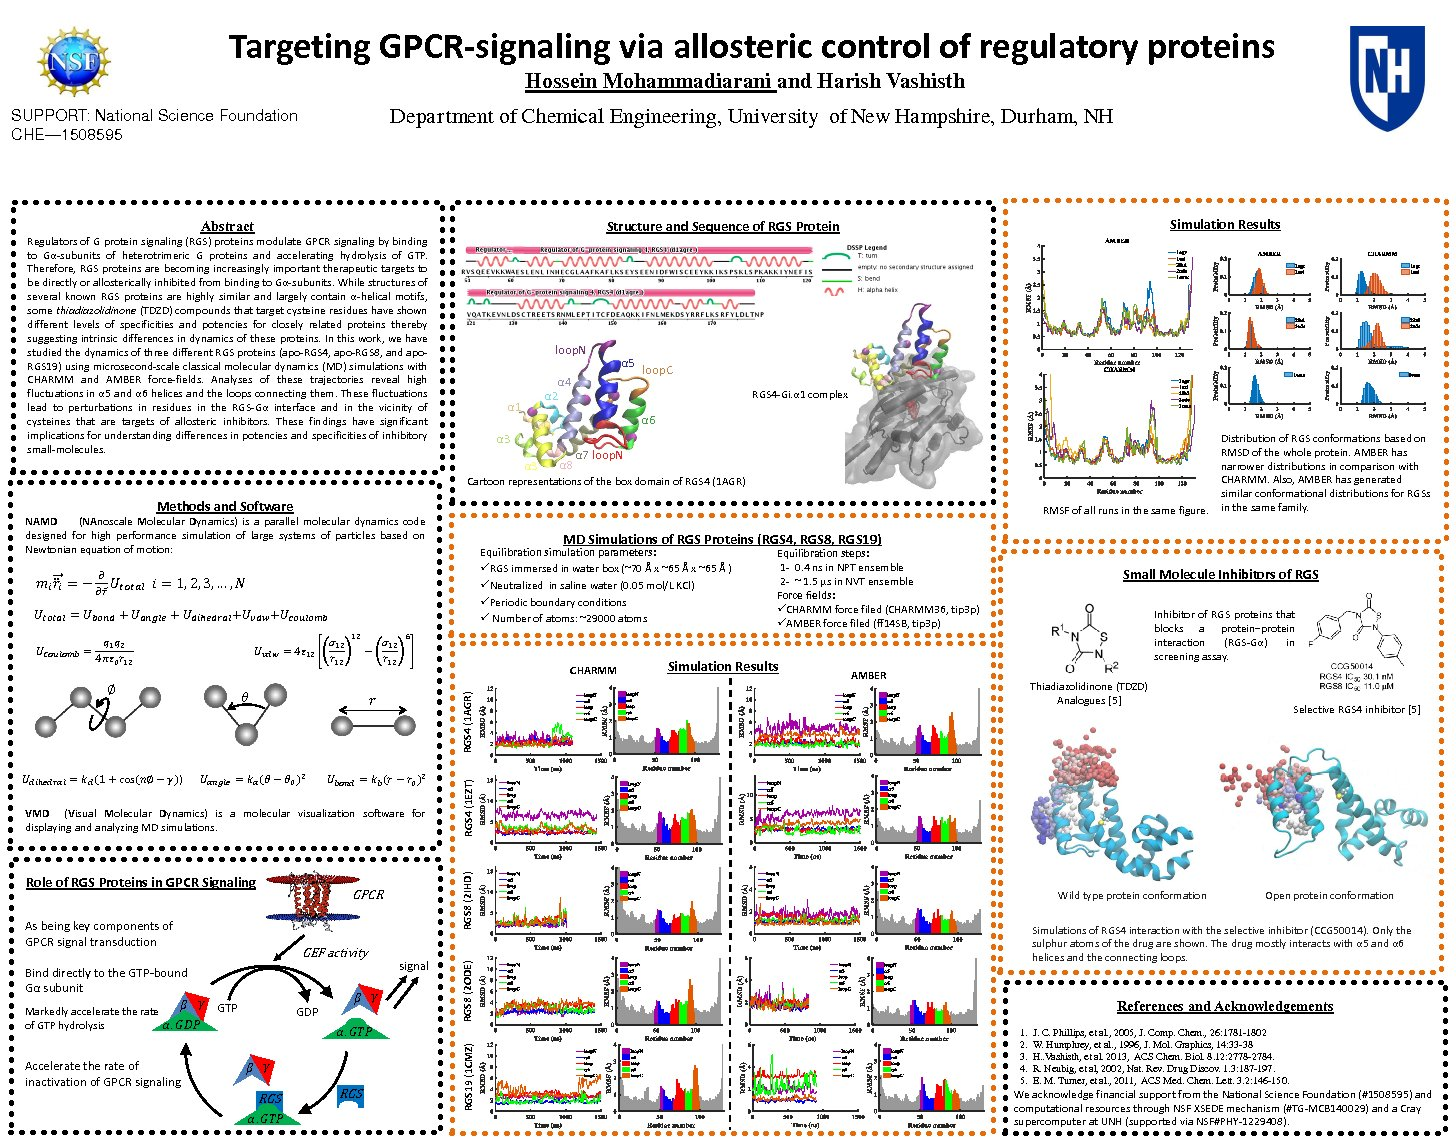 Targeting Gpcr-Signaling Via Allosteric Control Of Regulatory Proteins by hm2006